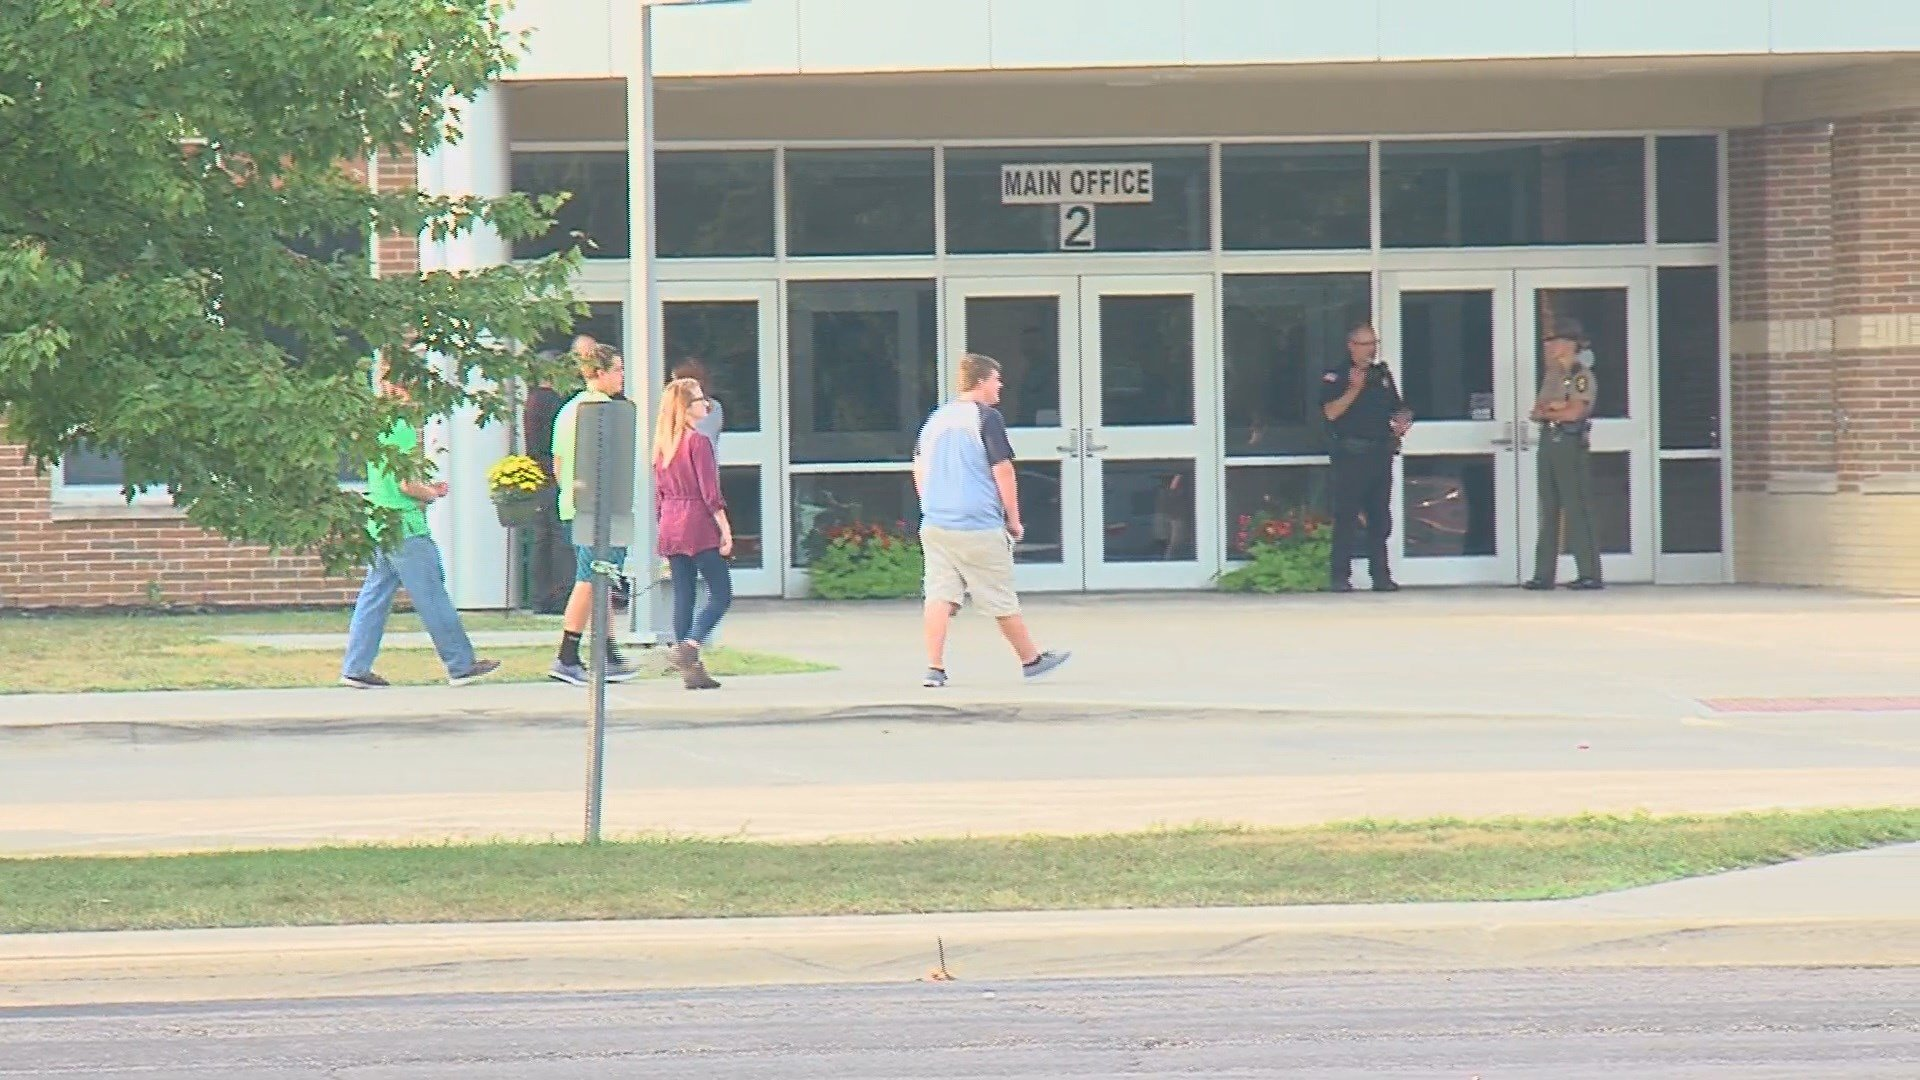 Student Shot In High School Cafeteria; Teacher Subdues Suspect